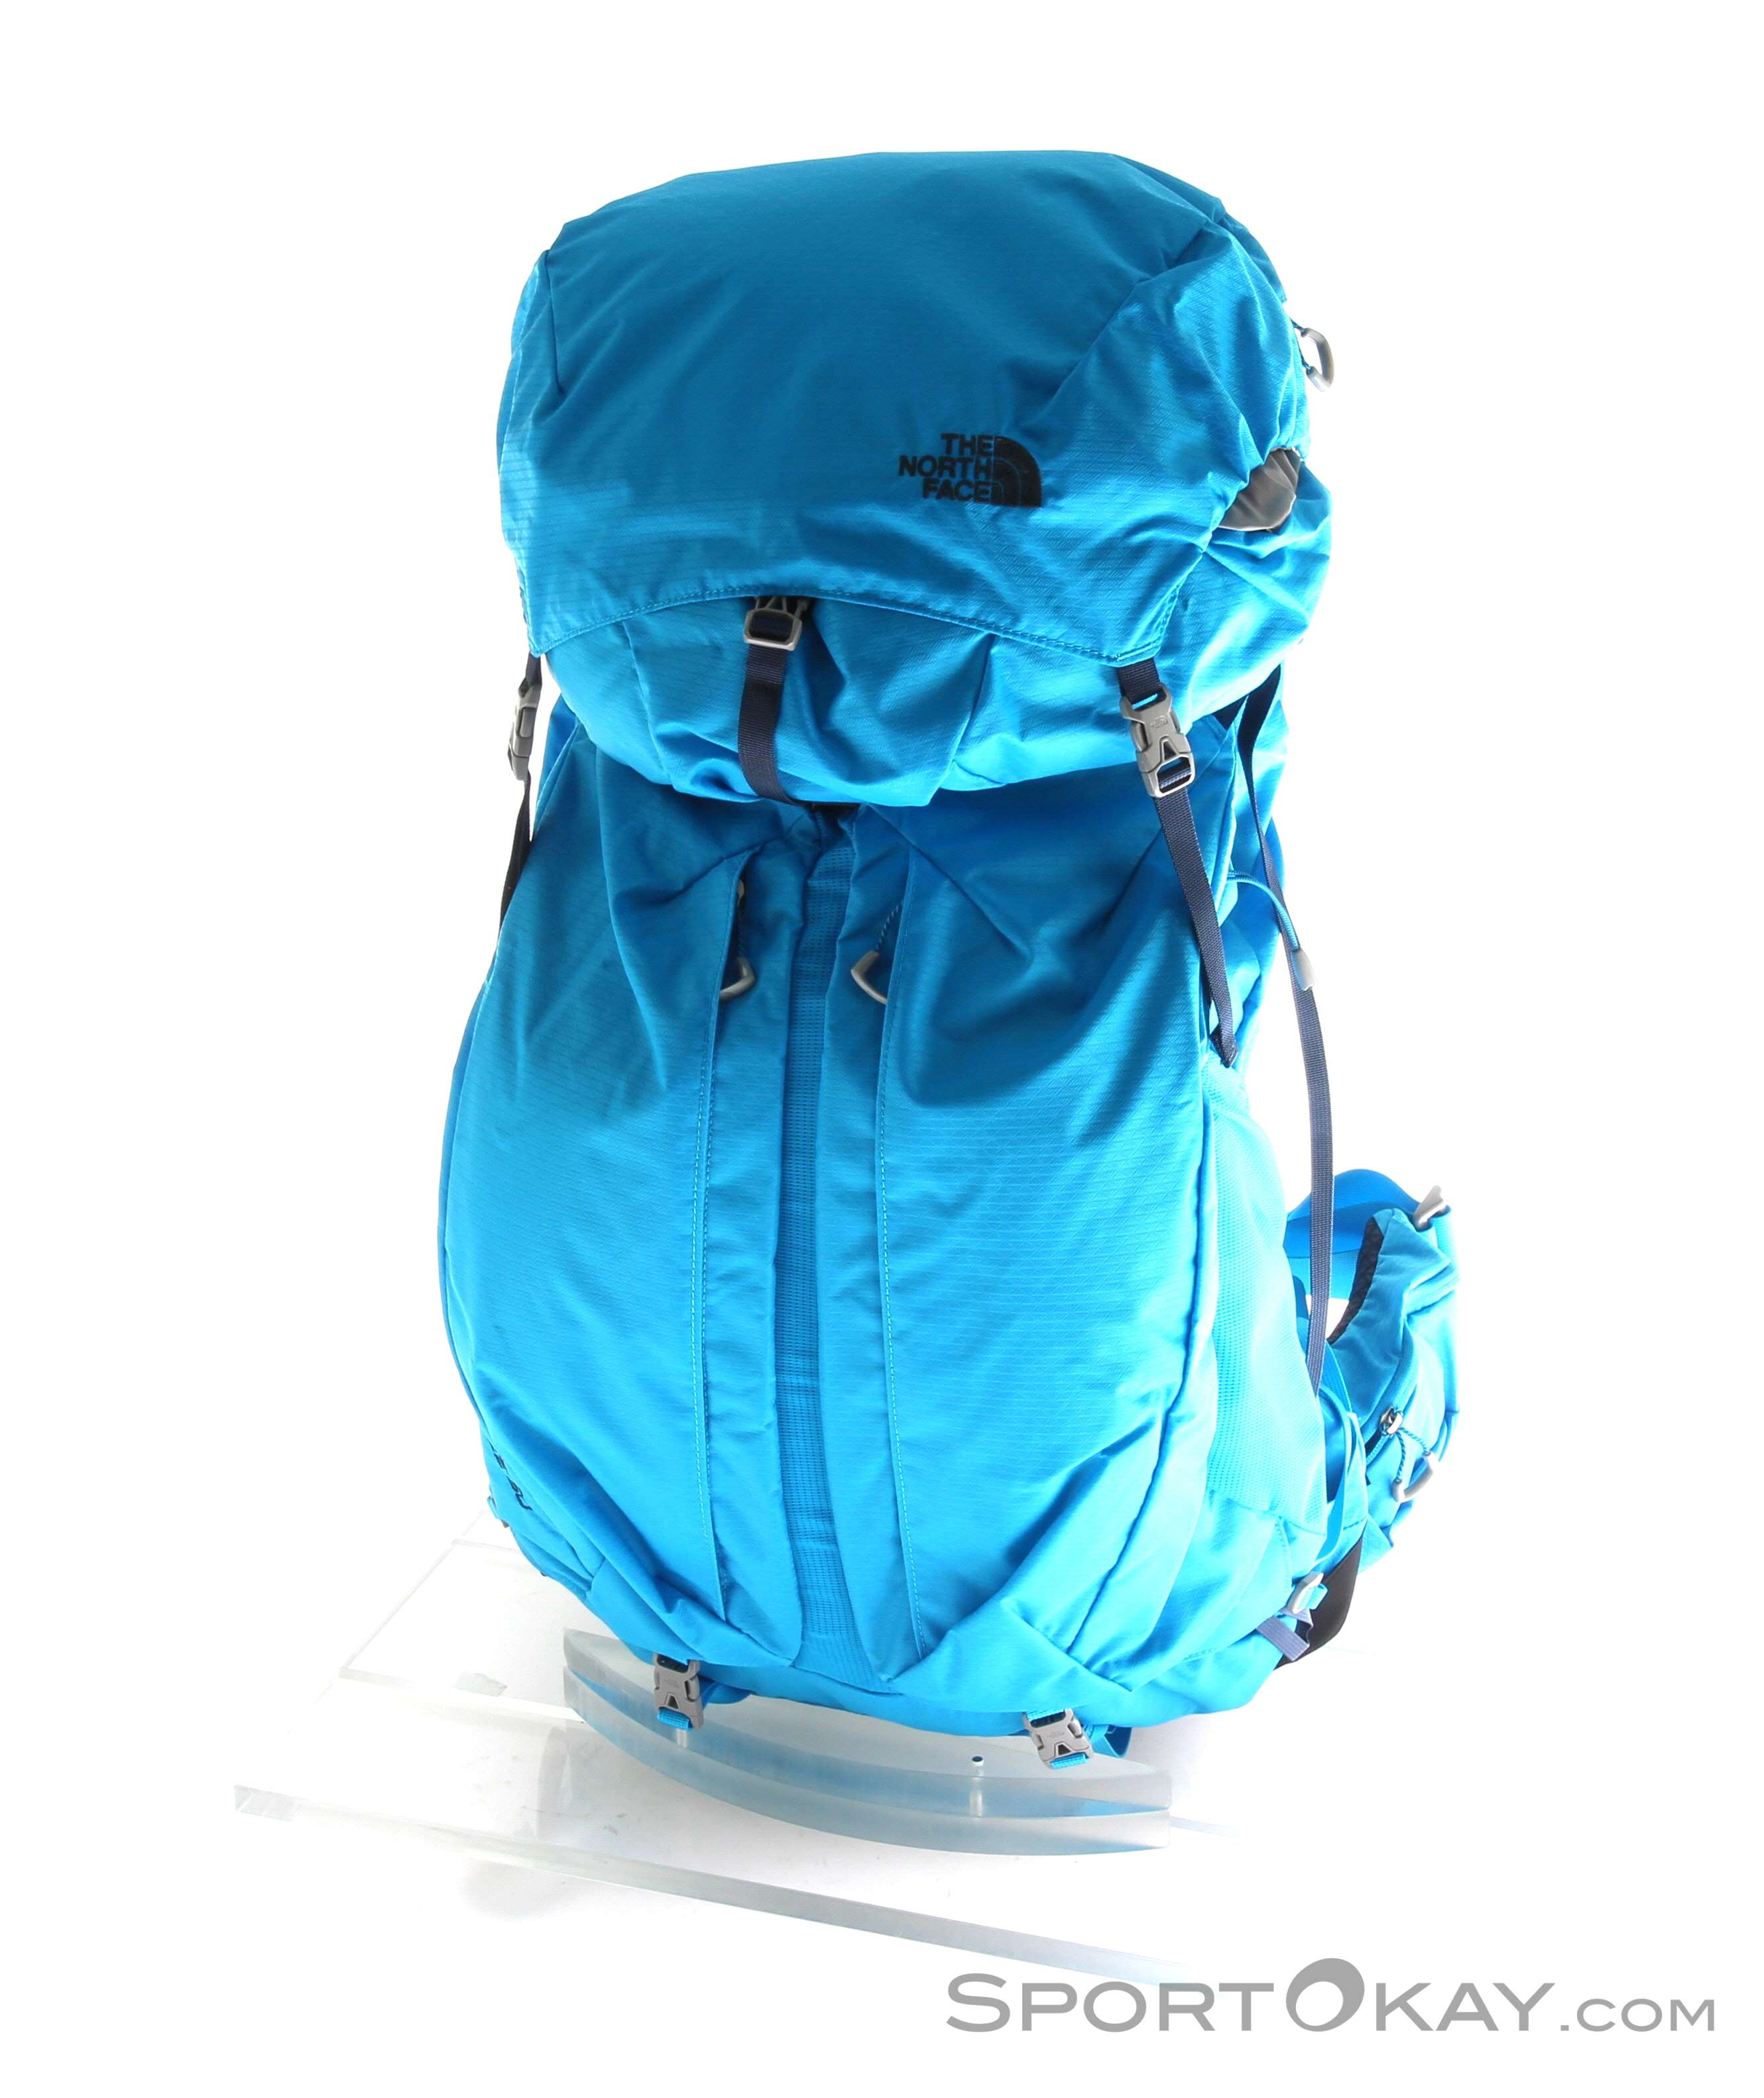 c40616dce The North Face The North Face Banchee 50l Backpack